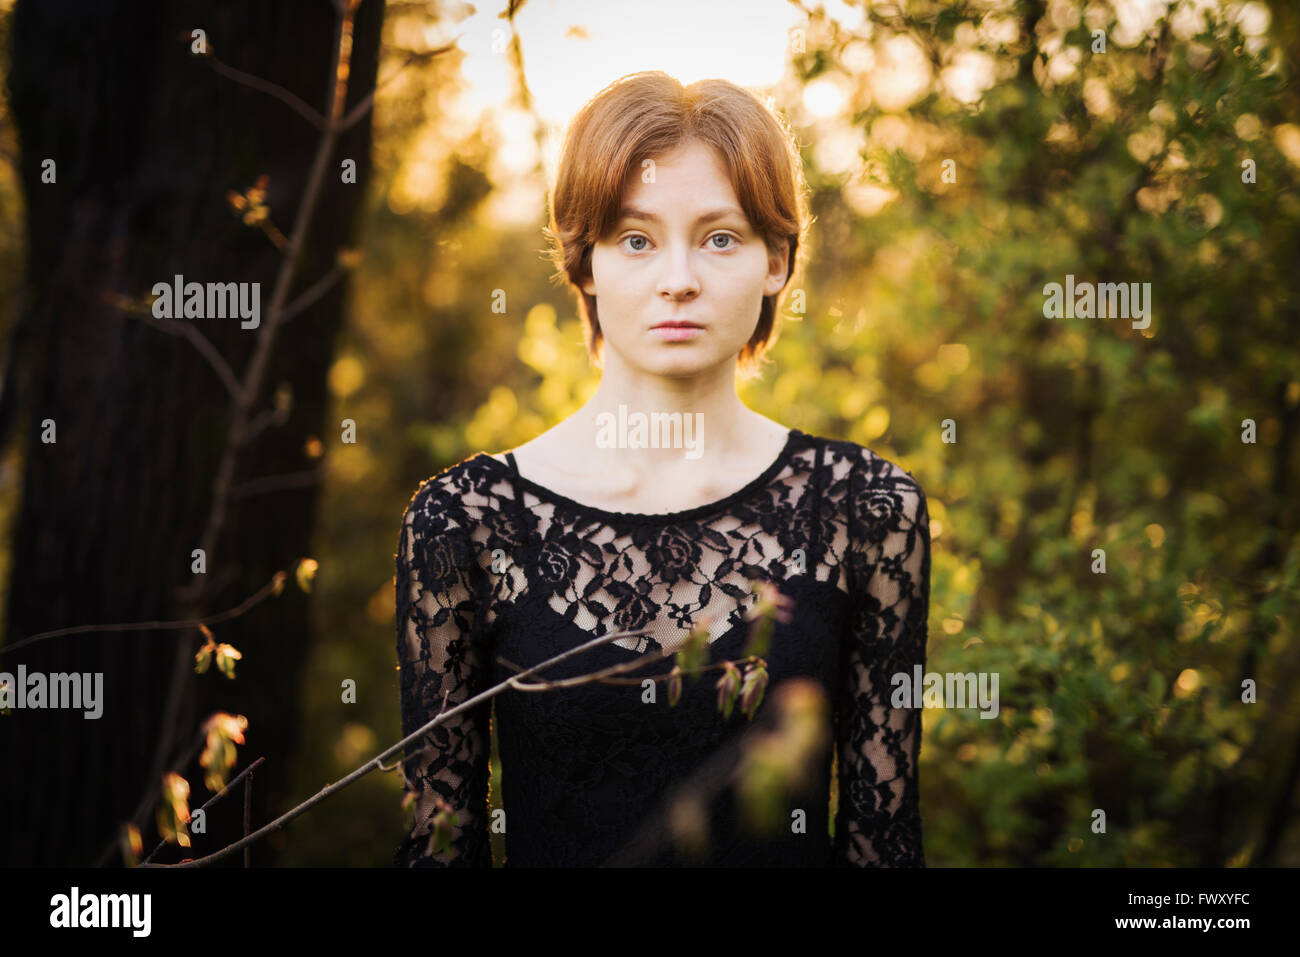 La Finlande, le sud-ouest de la Finlande, Portrait of young woman in forest Photo Stock